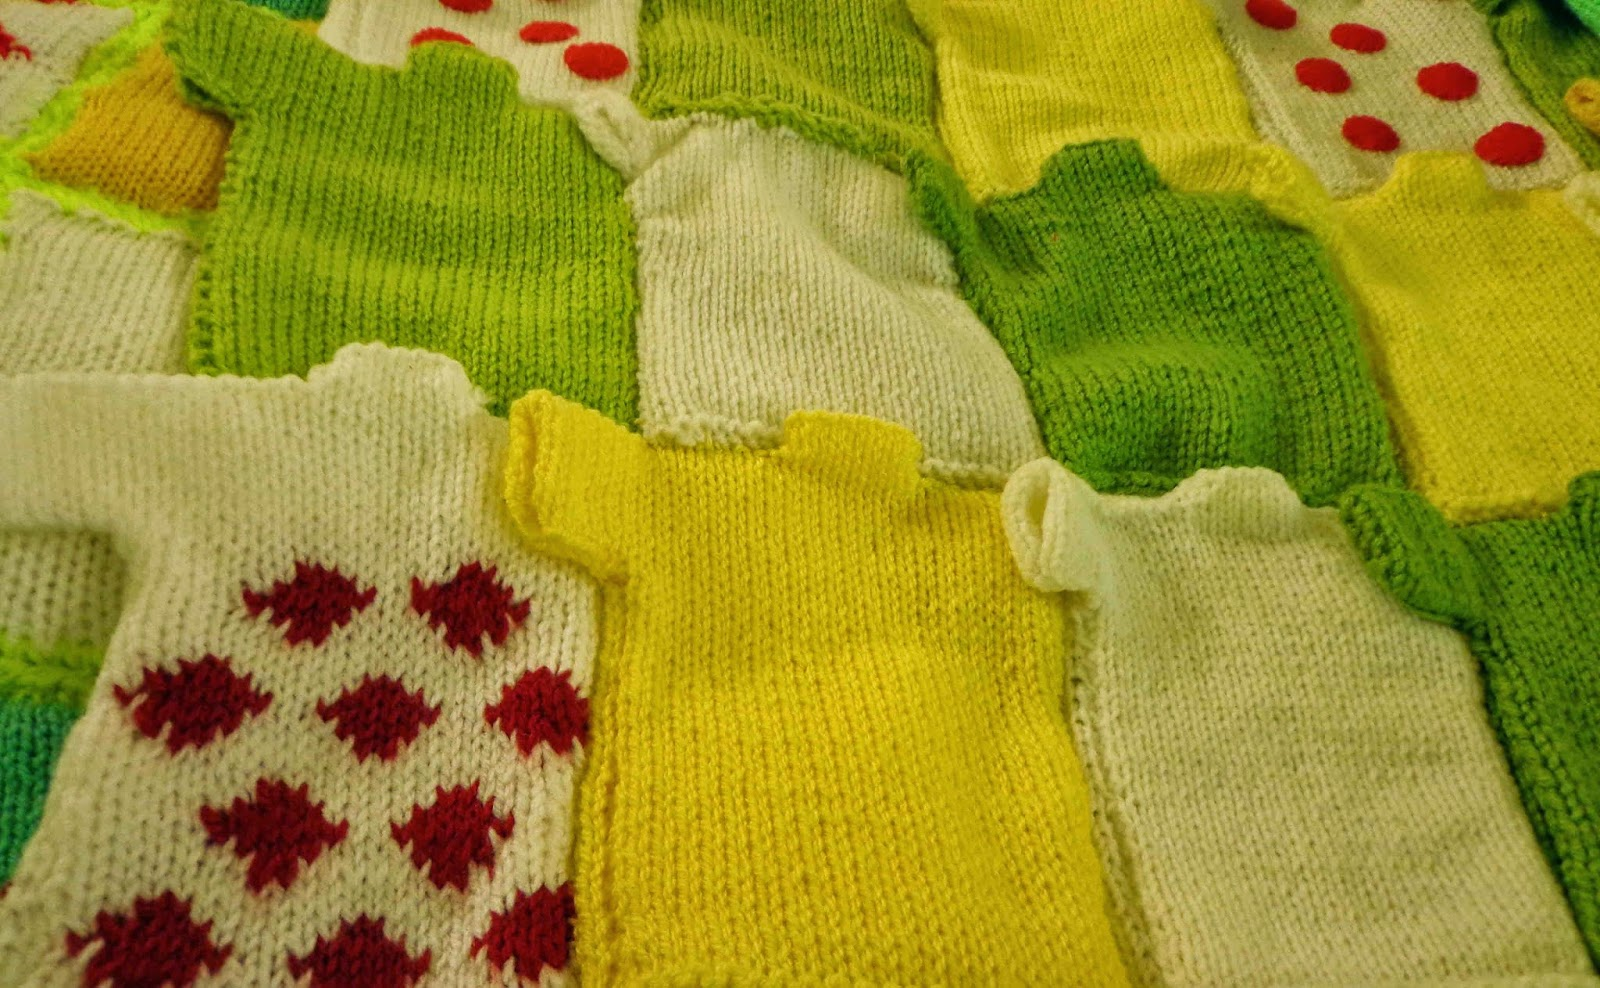 Oxfam Knitting Pattern For Blankets : Hippystitch: Volunteer to make blankets out of mini ...